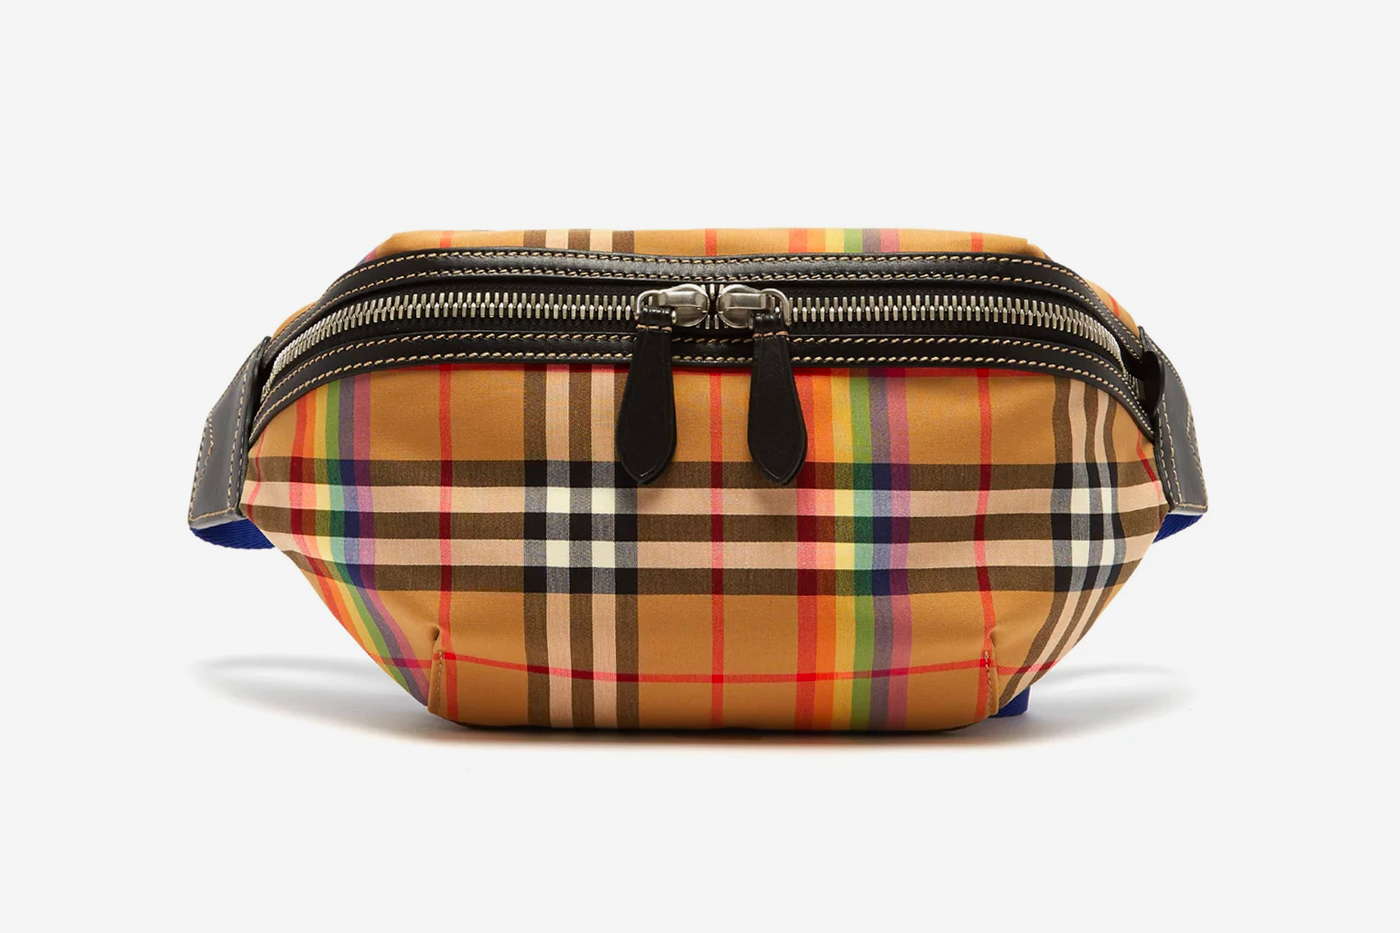 Burberry Vintage Check Cross-Body Bag fall winter 2018 release info accessories